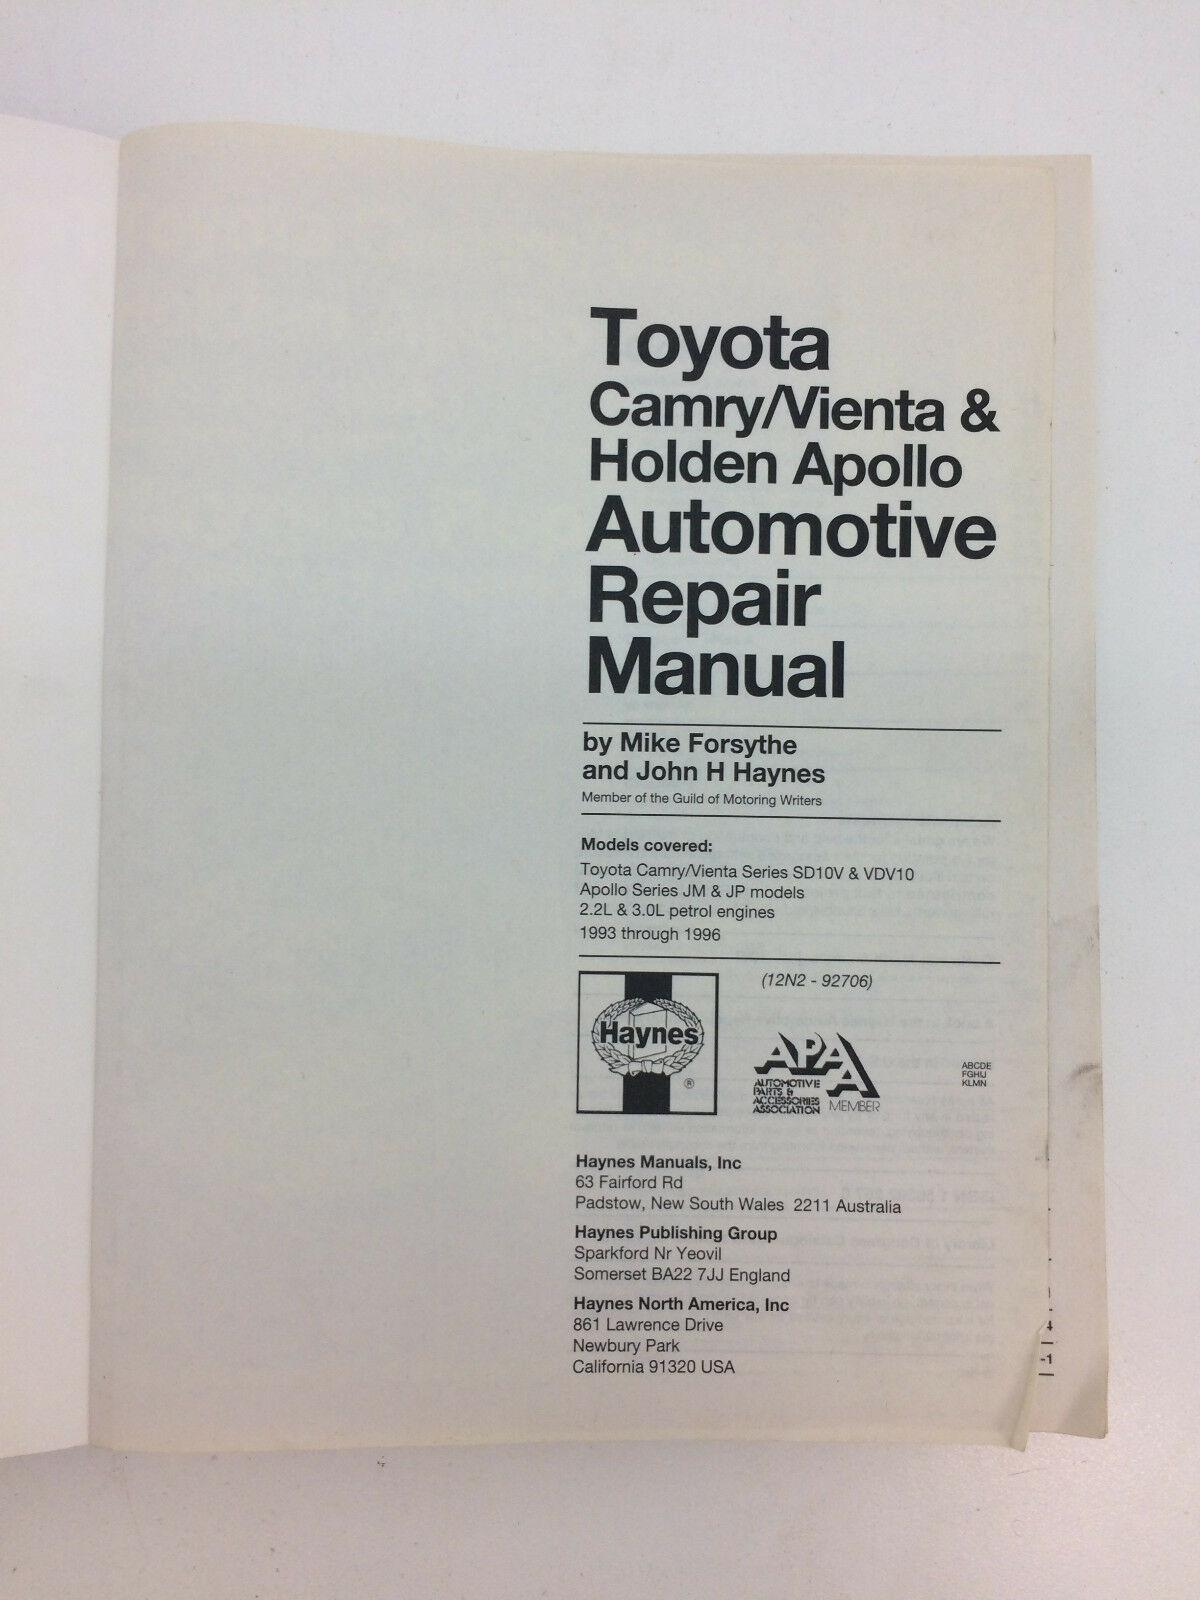 Toyota Camry/Vienta and Holden Apollo Australian Automotive Repair Manual:  1993 to 1996 by Mike Forsythe, J. H. Haynes (Paperback, 2000) | eBay